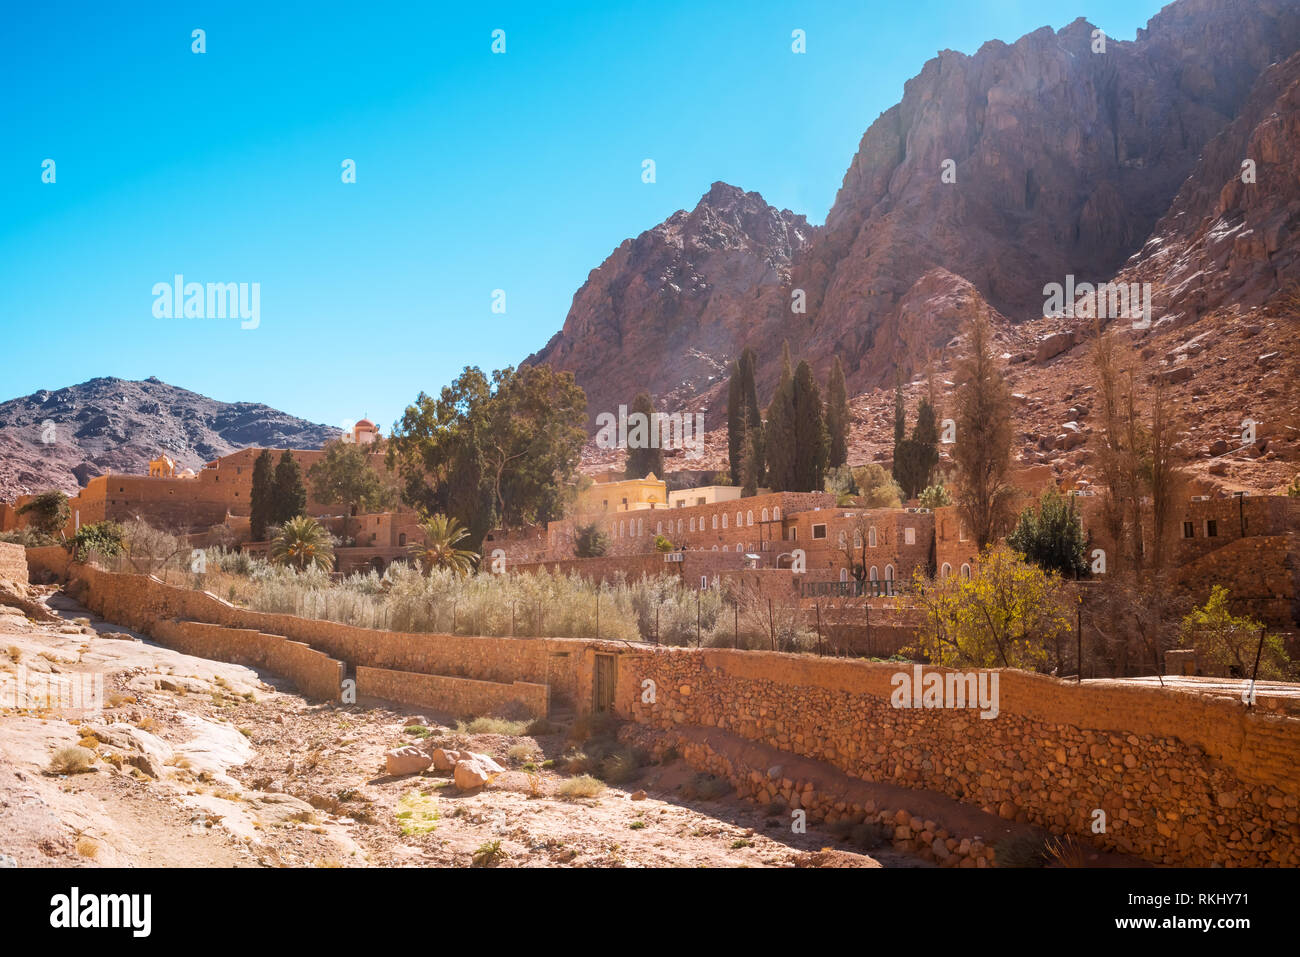 Church and monastery in Saint Catherine next to Moses mountain Egypt, Sinai. Famous place for Christianity Orthodoxy pilgrims - Stock Image